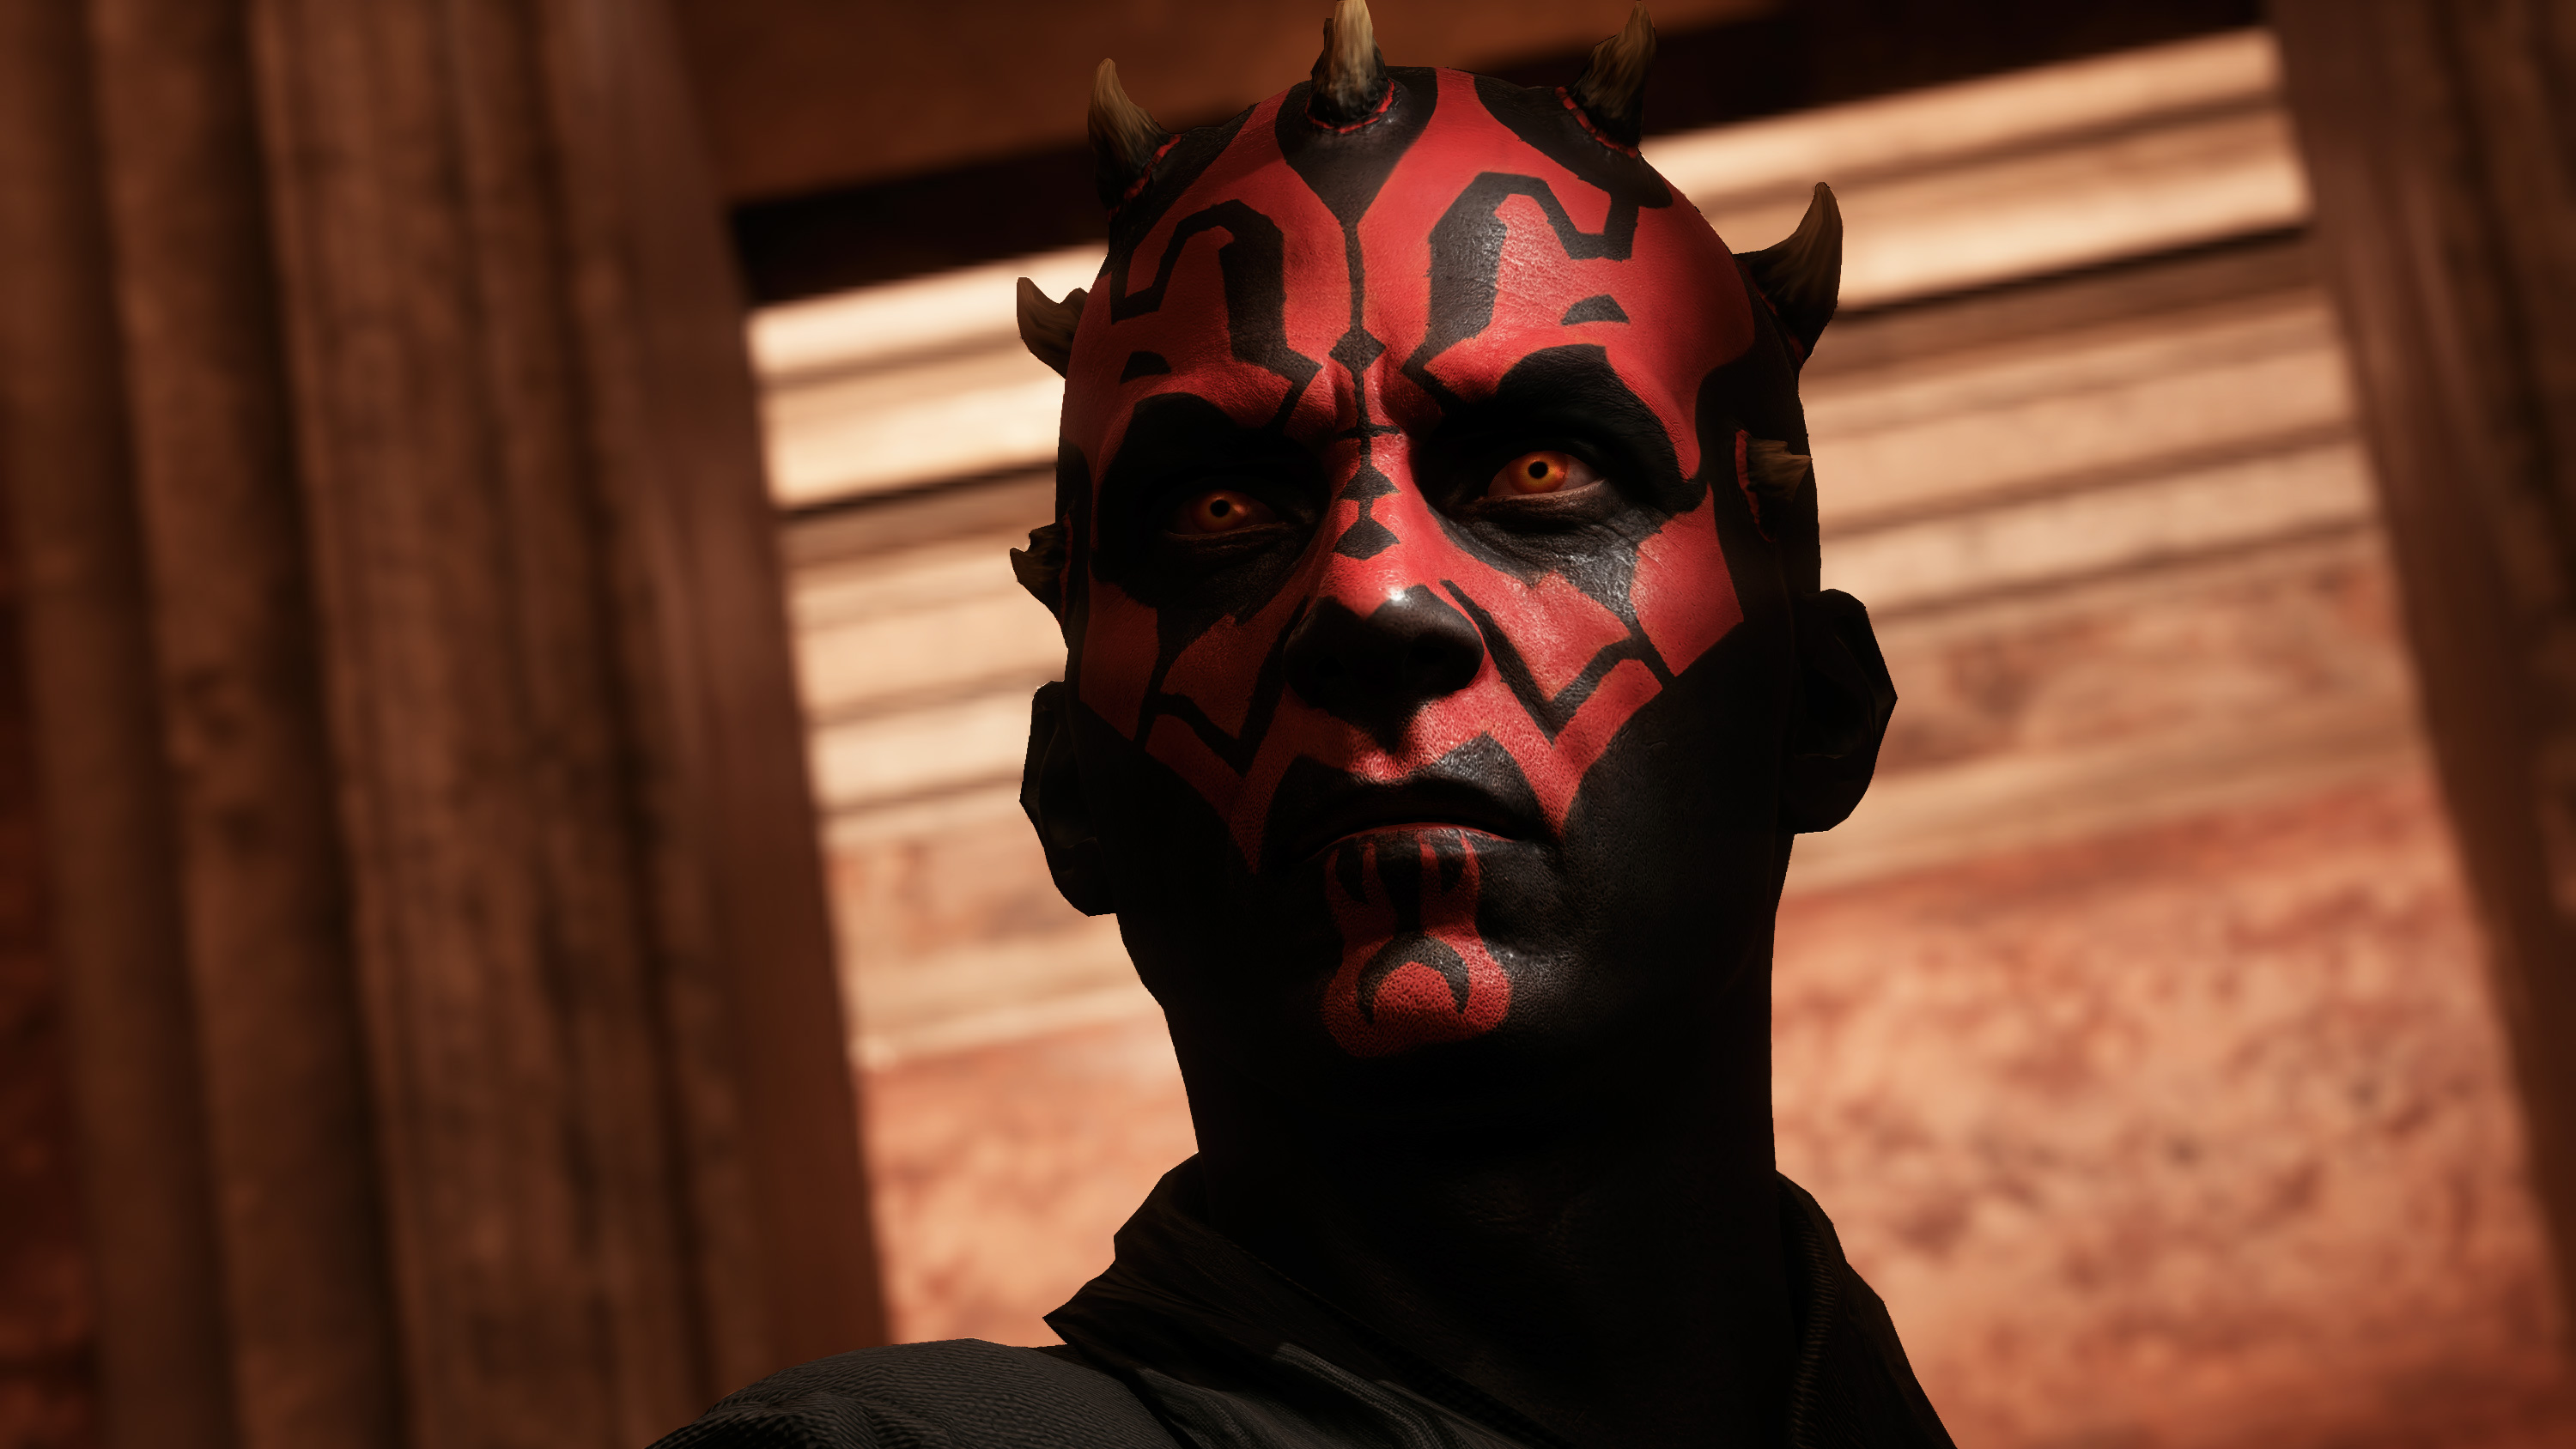 2048x1152 Darth Maul Star Wars Battlefront 2 2048x1152 Resolution Hd 4k Wallpapers Images Backgrounds Photos And Pictures